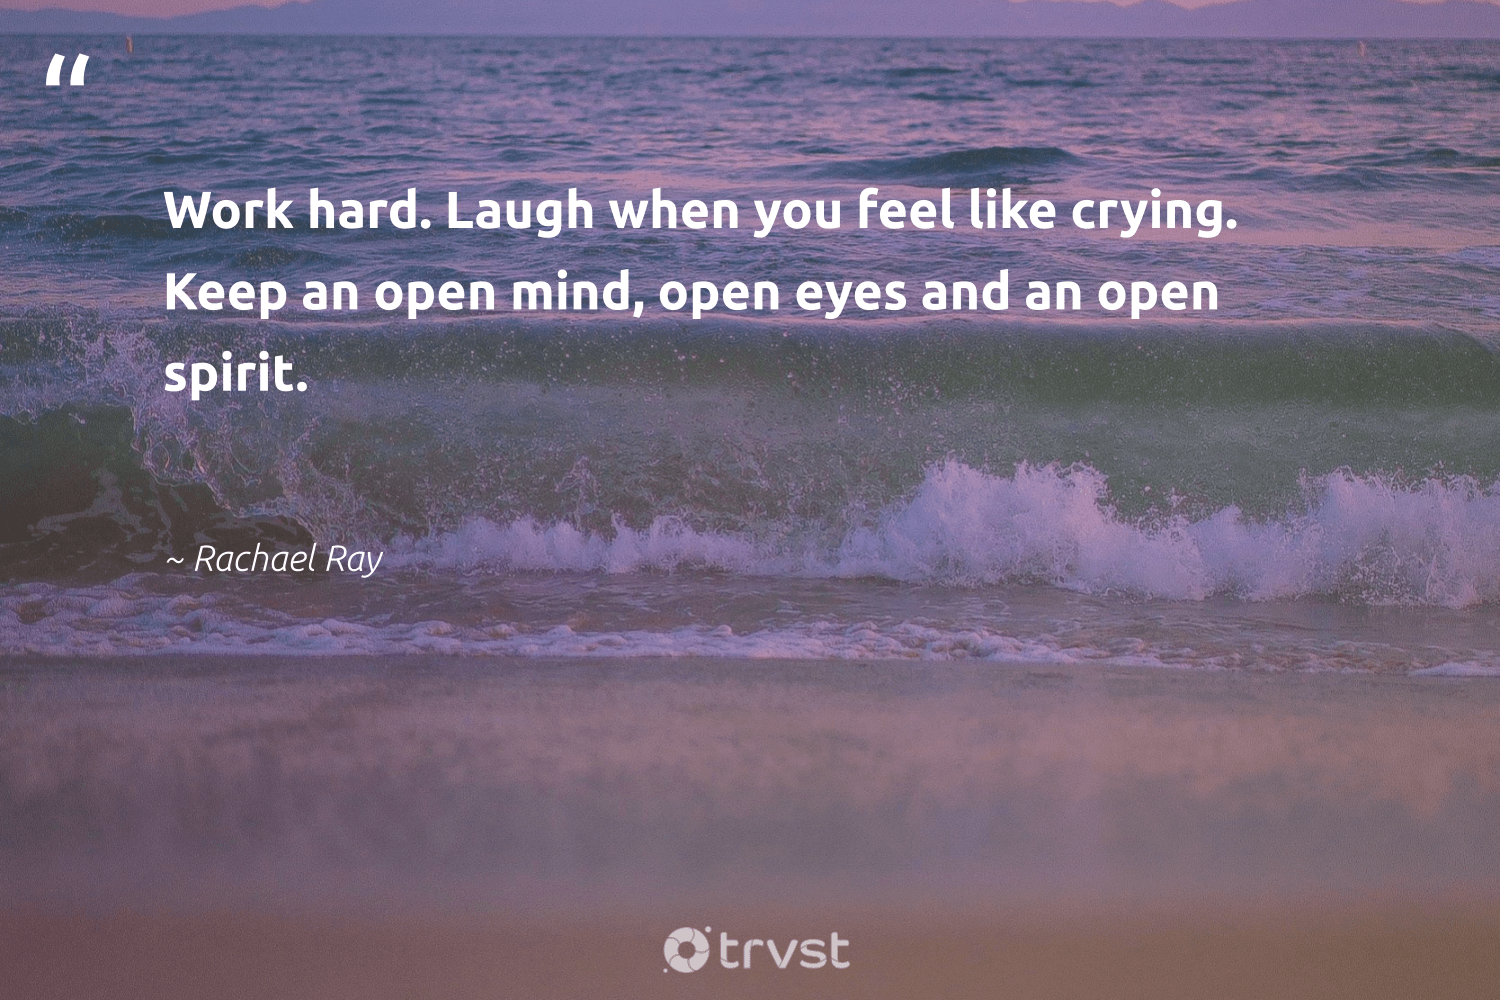 """Work hard. Laugh when you feel like crying. Keep an open mind, open eyes and an open spirit.""  - Rachael Ray #trvst #quotes #futureofwork #collectiveaction #begreat #socialchange #nevergiveup #thinkgreen #softskills #beinspired #bethechange #socialimpact"